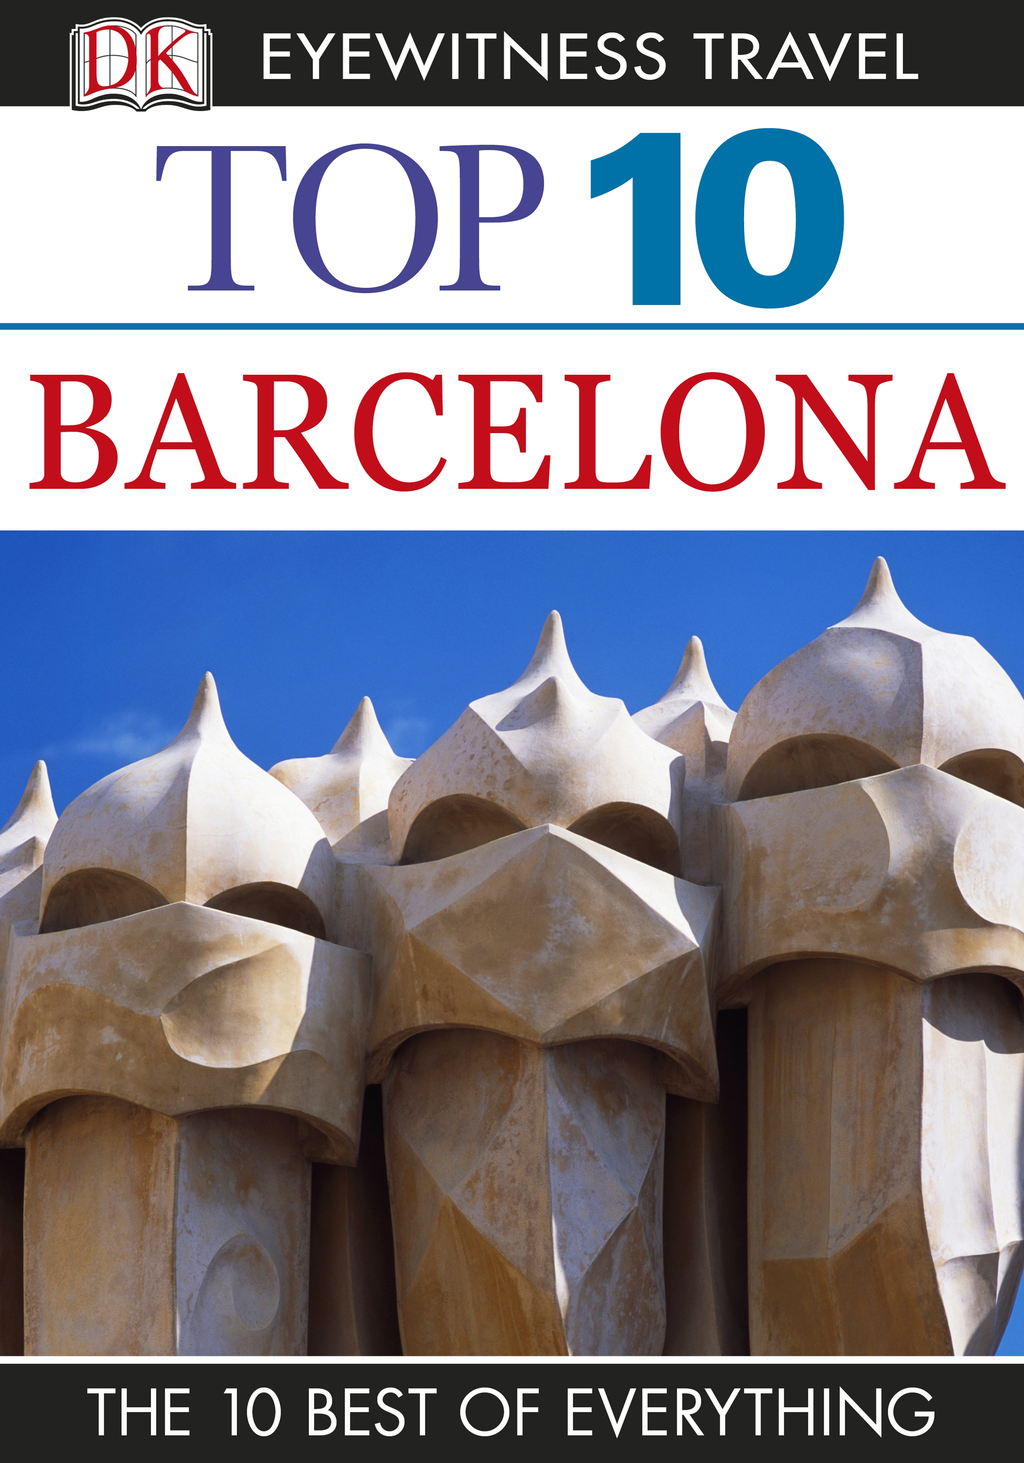 DK Eyewitness Top 10 Travel Guide: Barcelona Barcelona